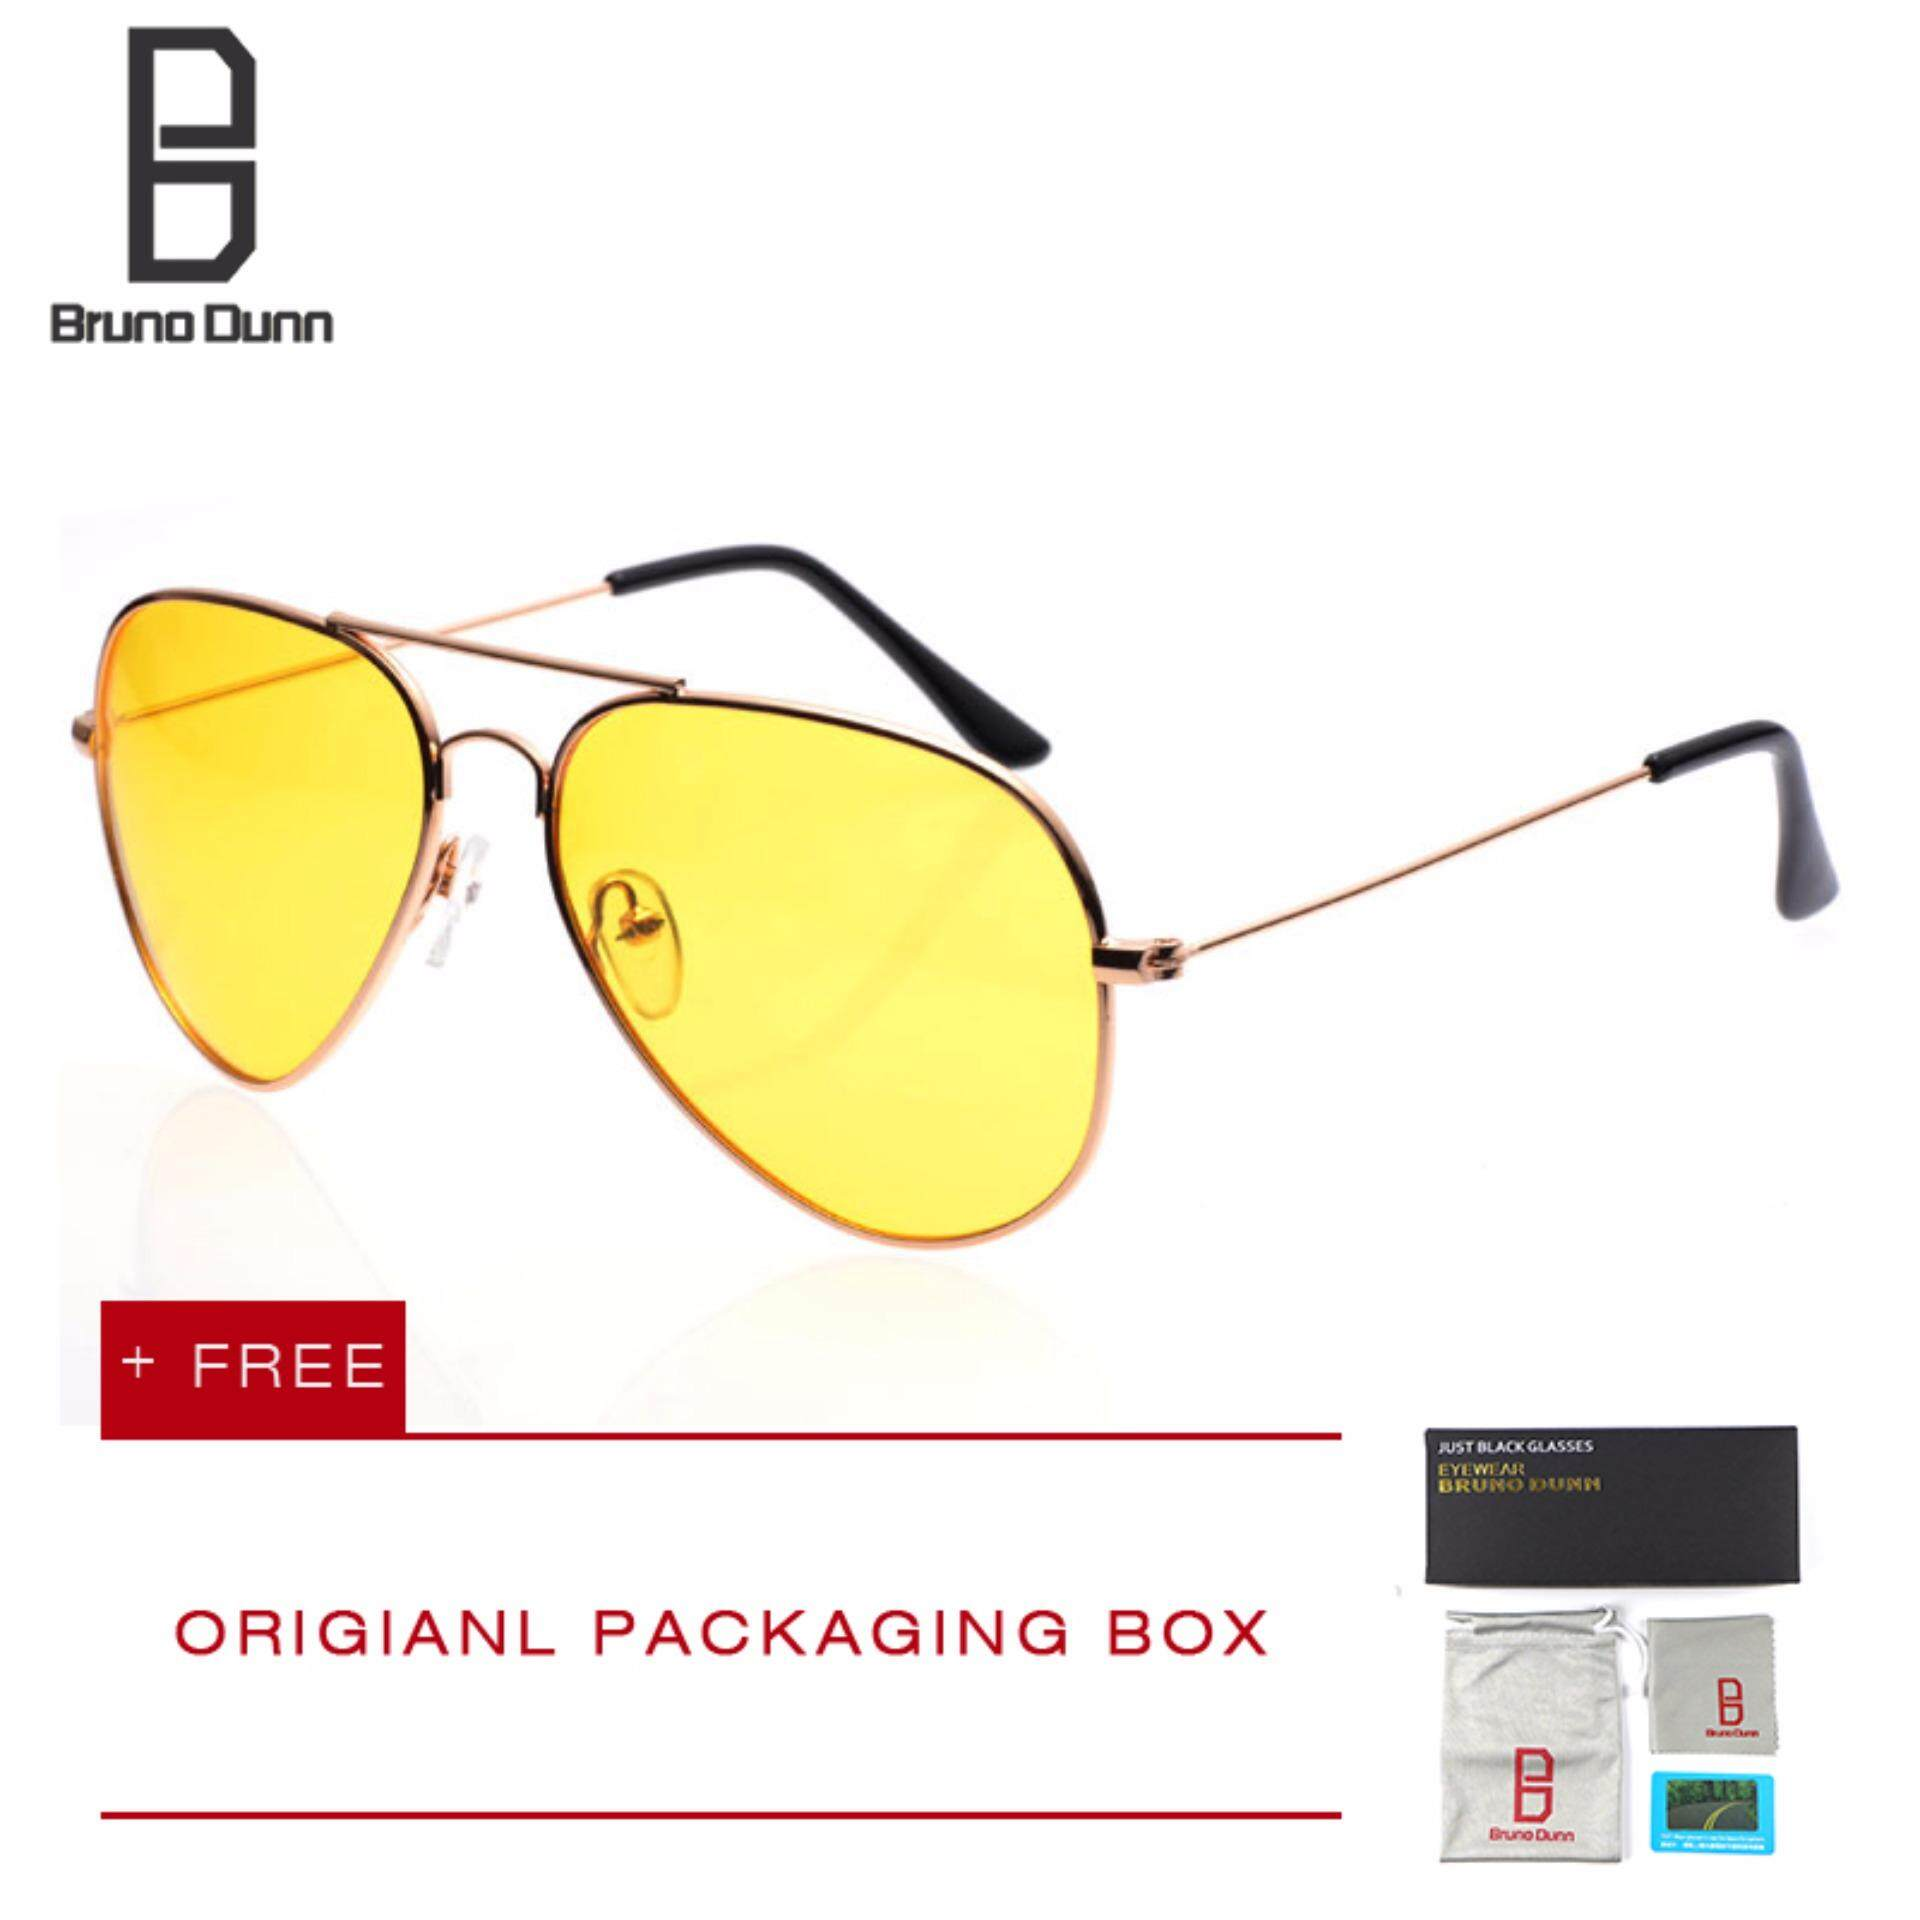 Bruno Dunn night vision men women sunglasses polarized fishing driving Eyewear sun glasses 3025 (gold frame )